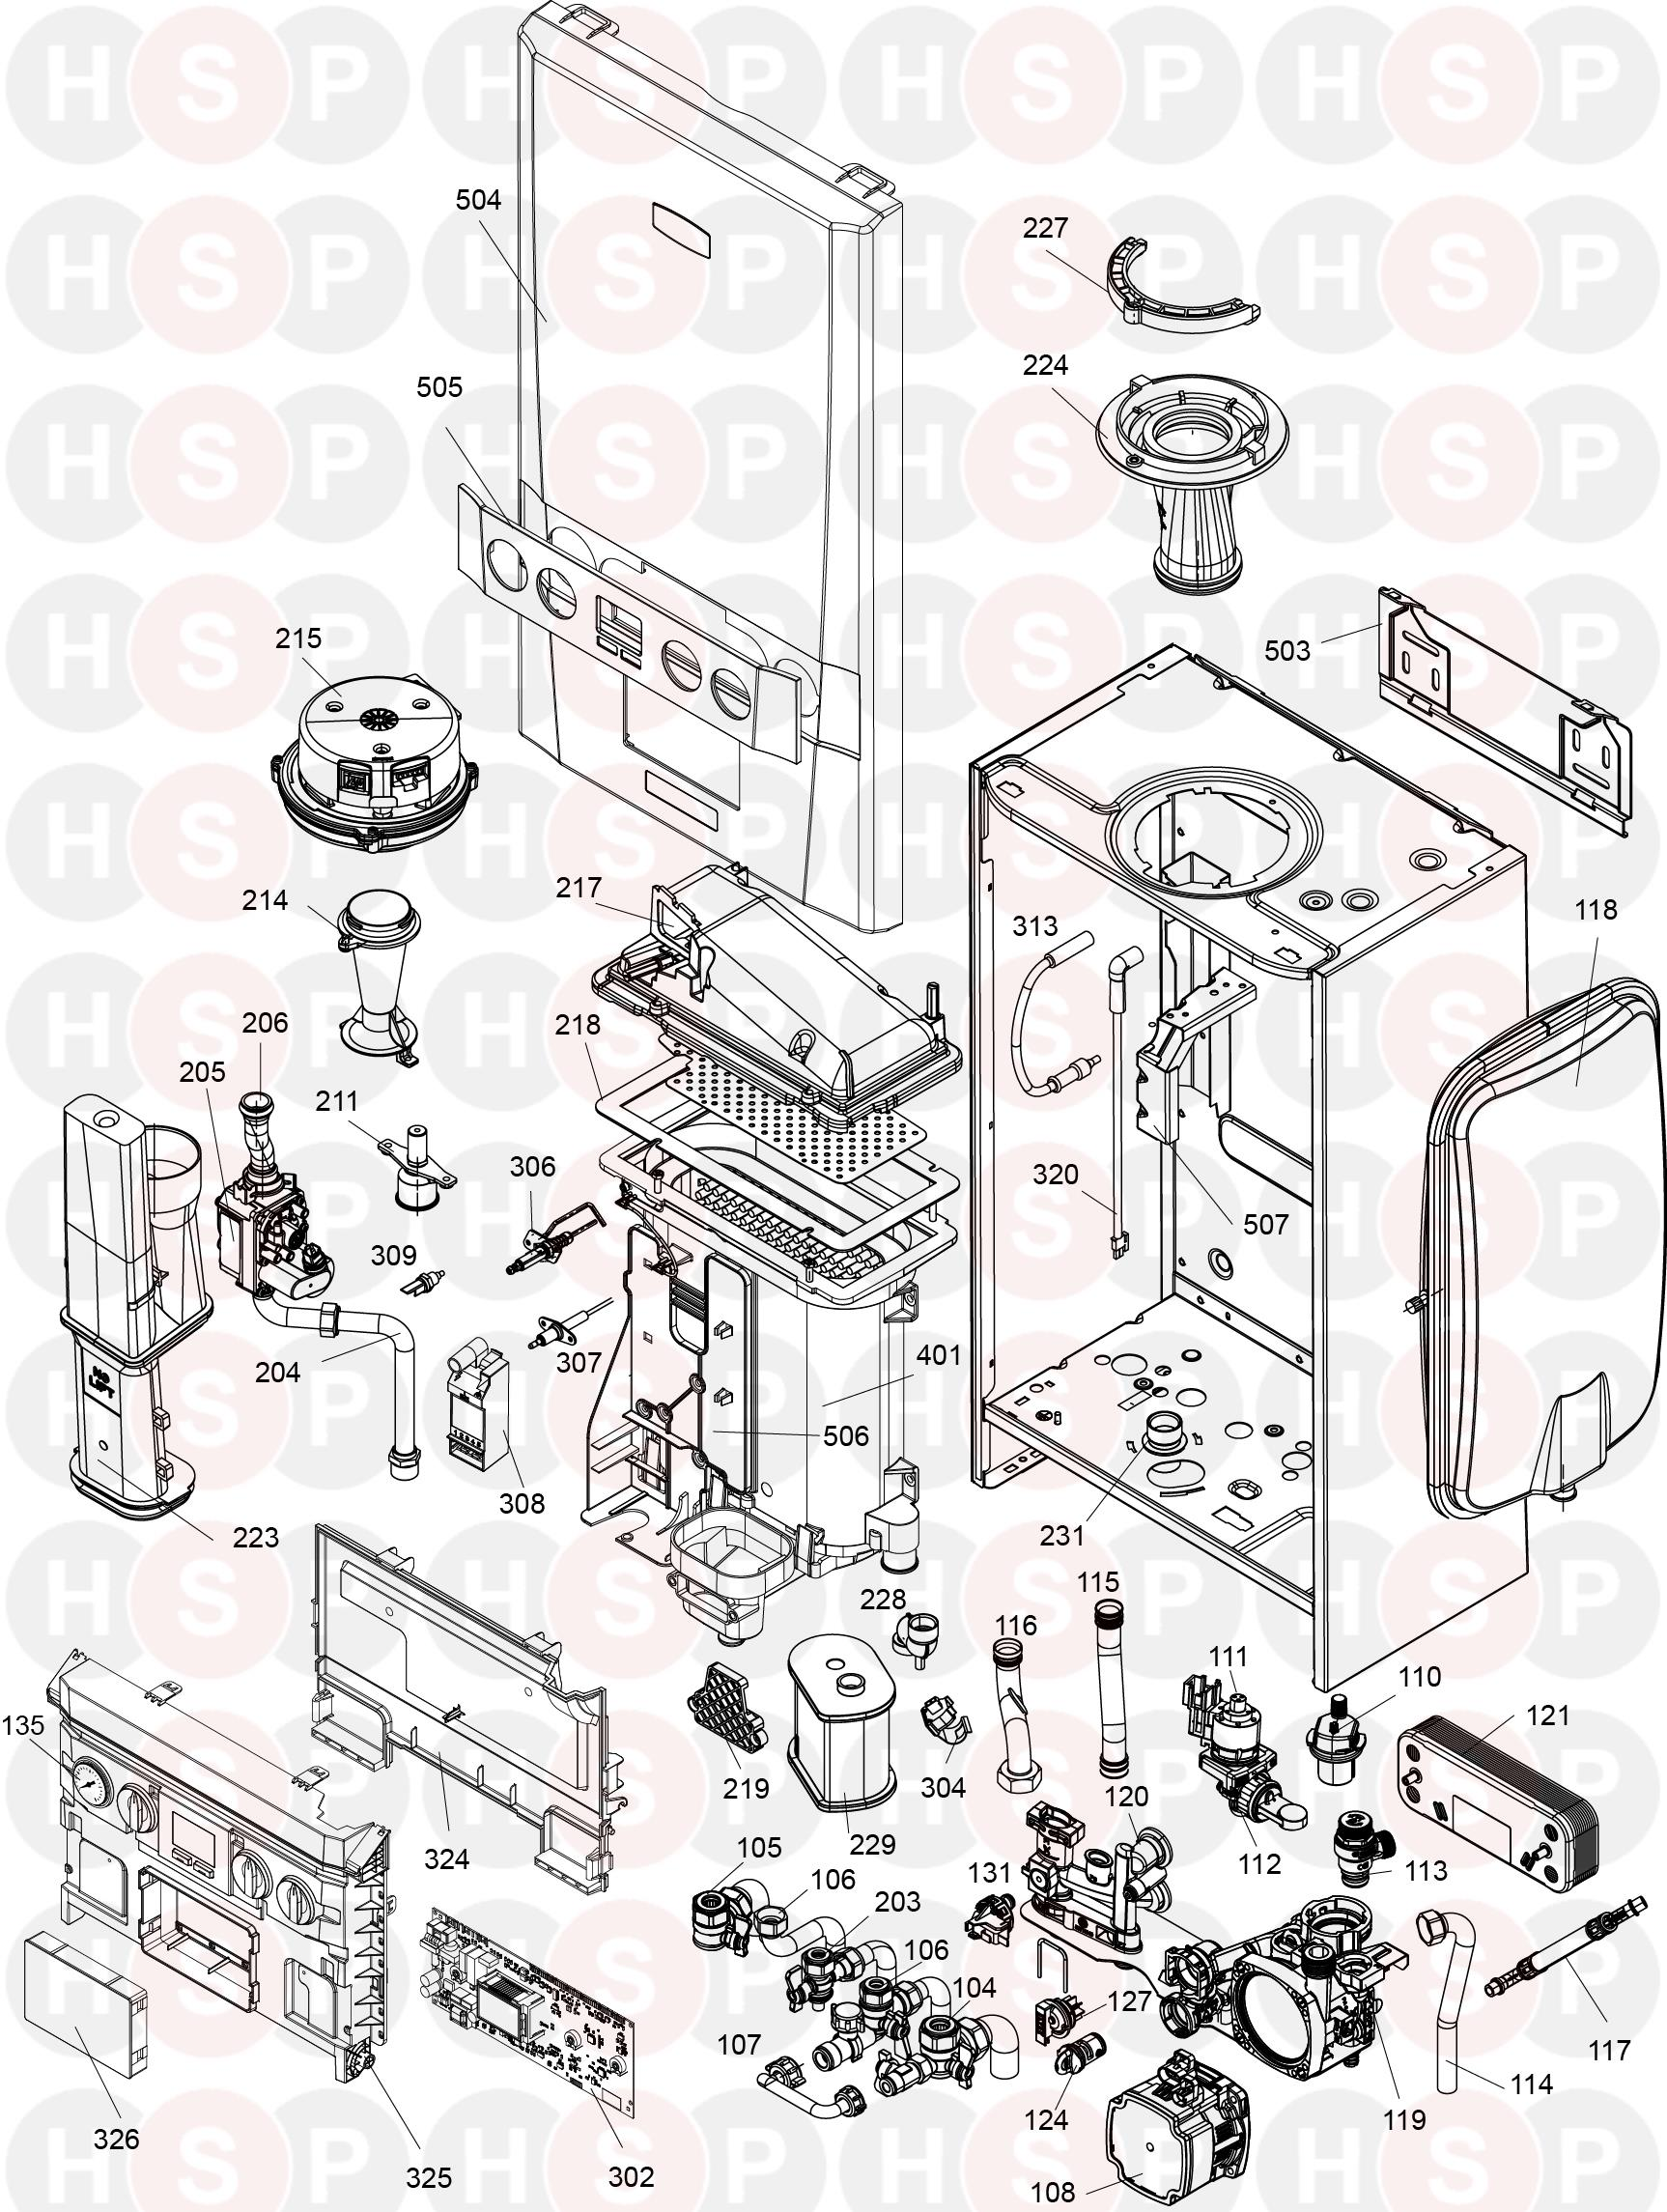 Ideal 30 Combi Esp1  Boiler Exploded View Diagram